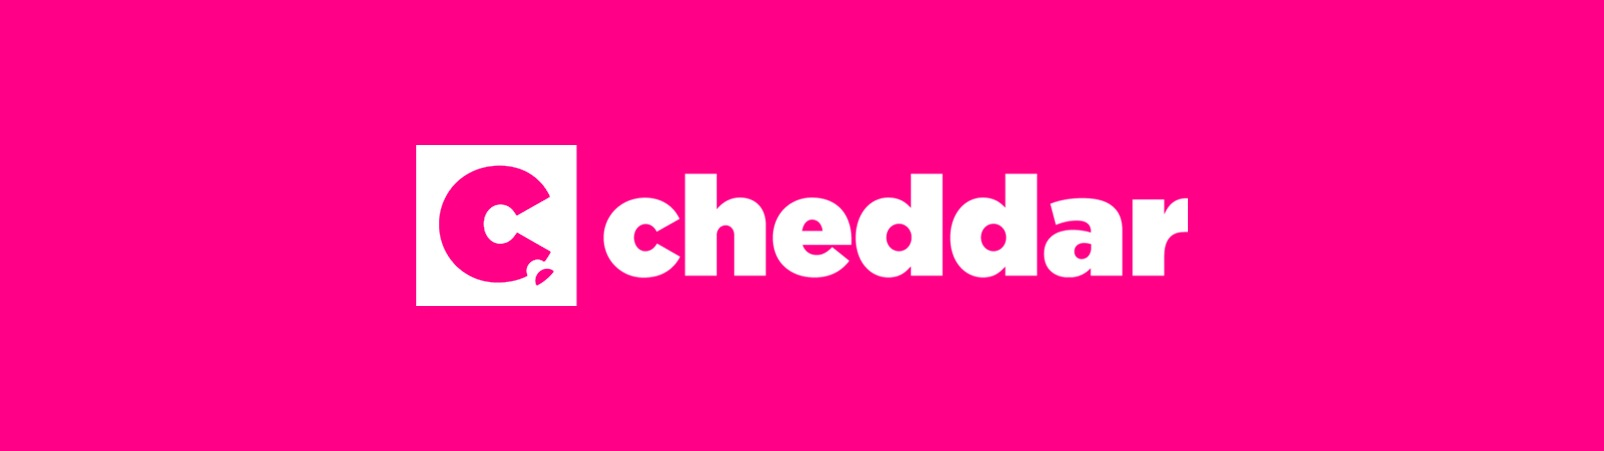 Altice USA Completes Acquisition of Cheddar.